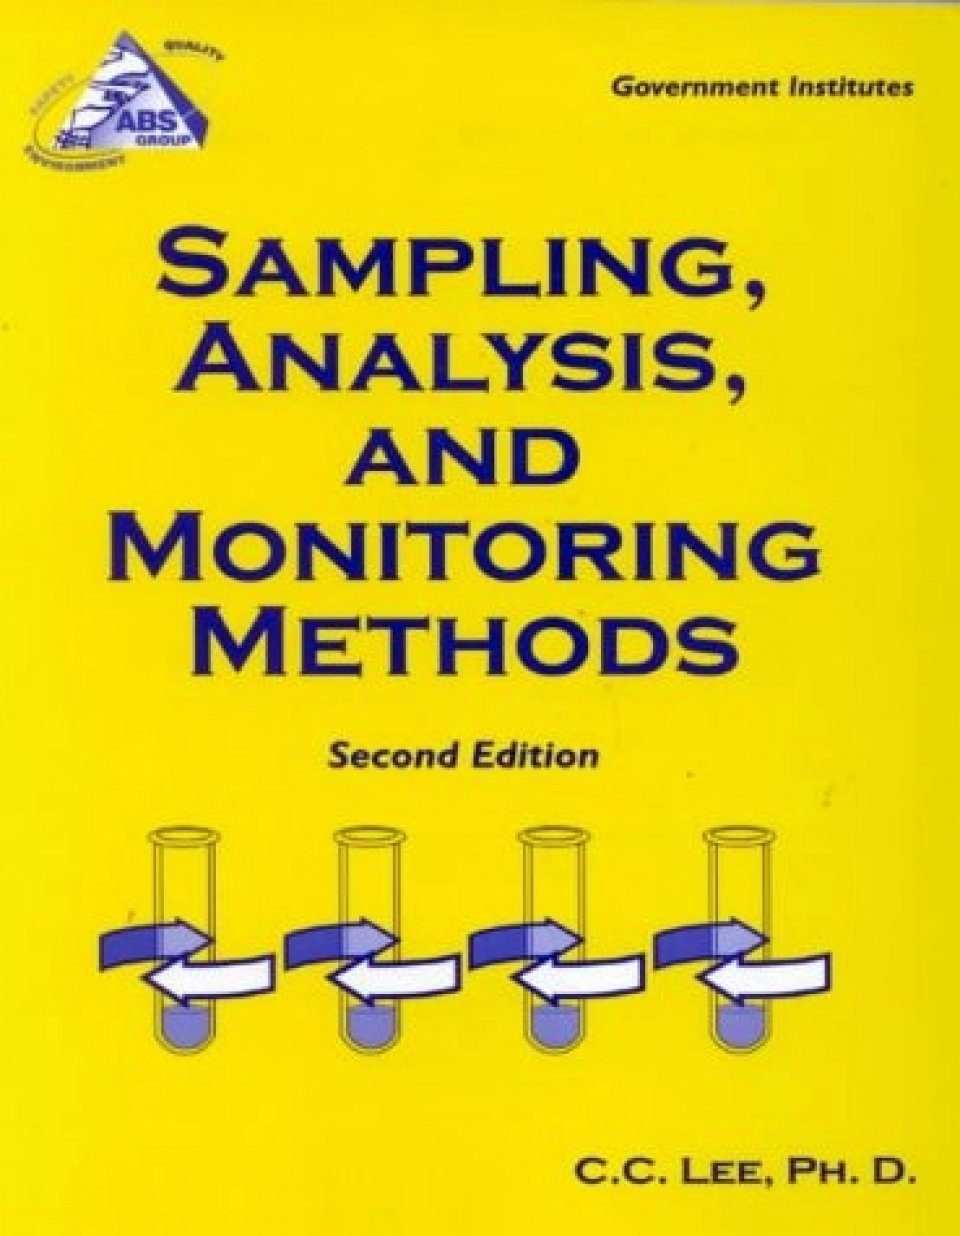 Sampling, Analysis and Monitoring Methods